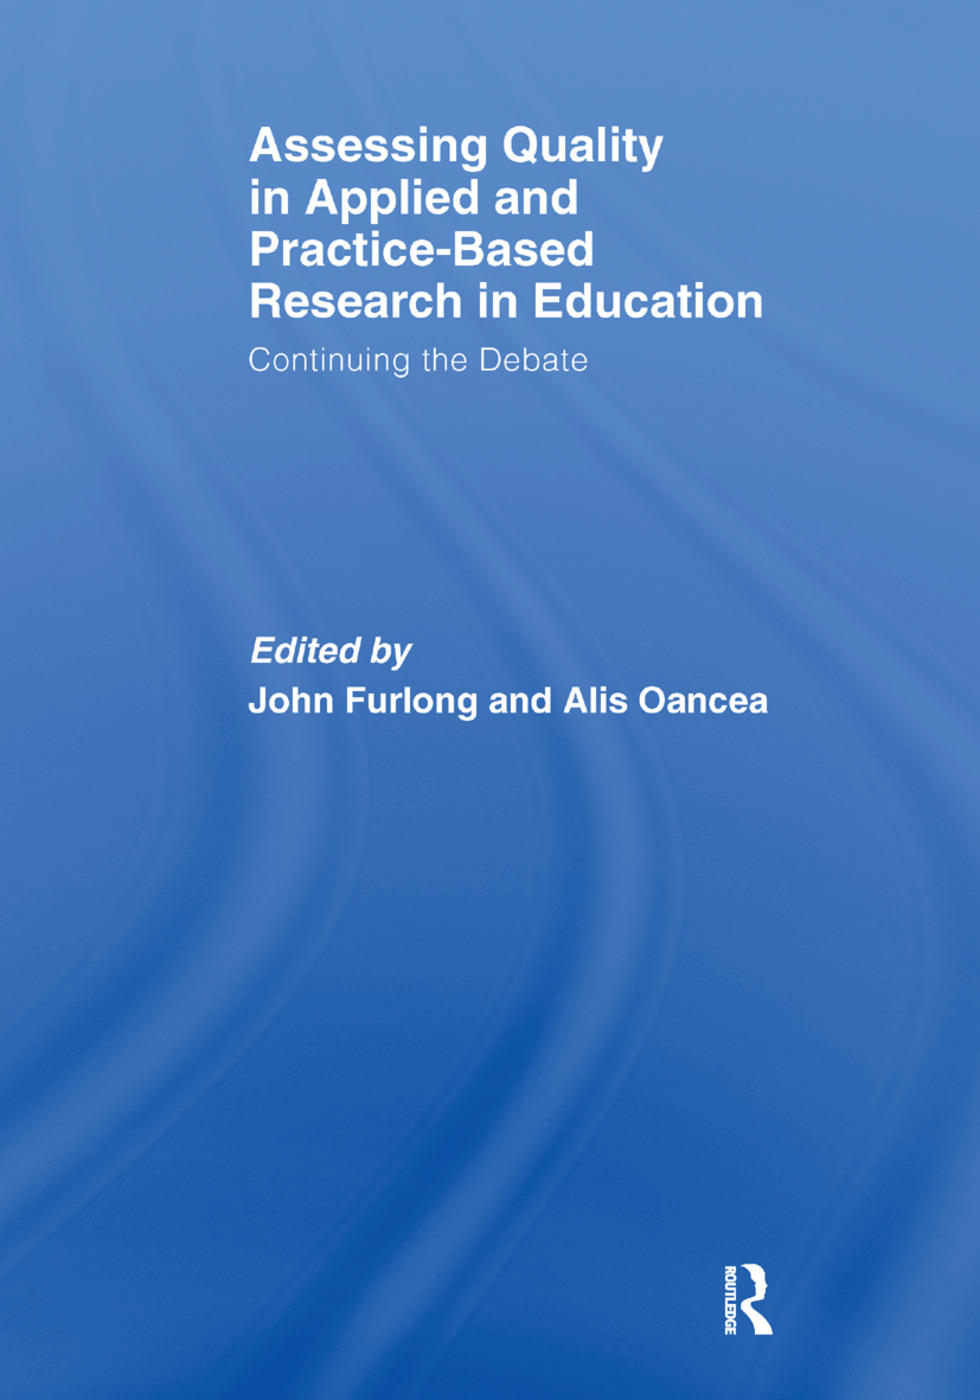 Assessing quality in applied and practice-based research in education.